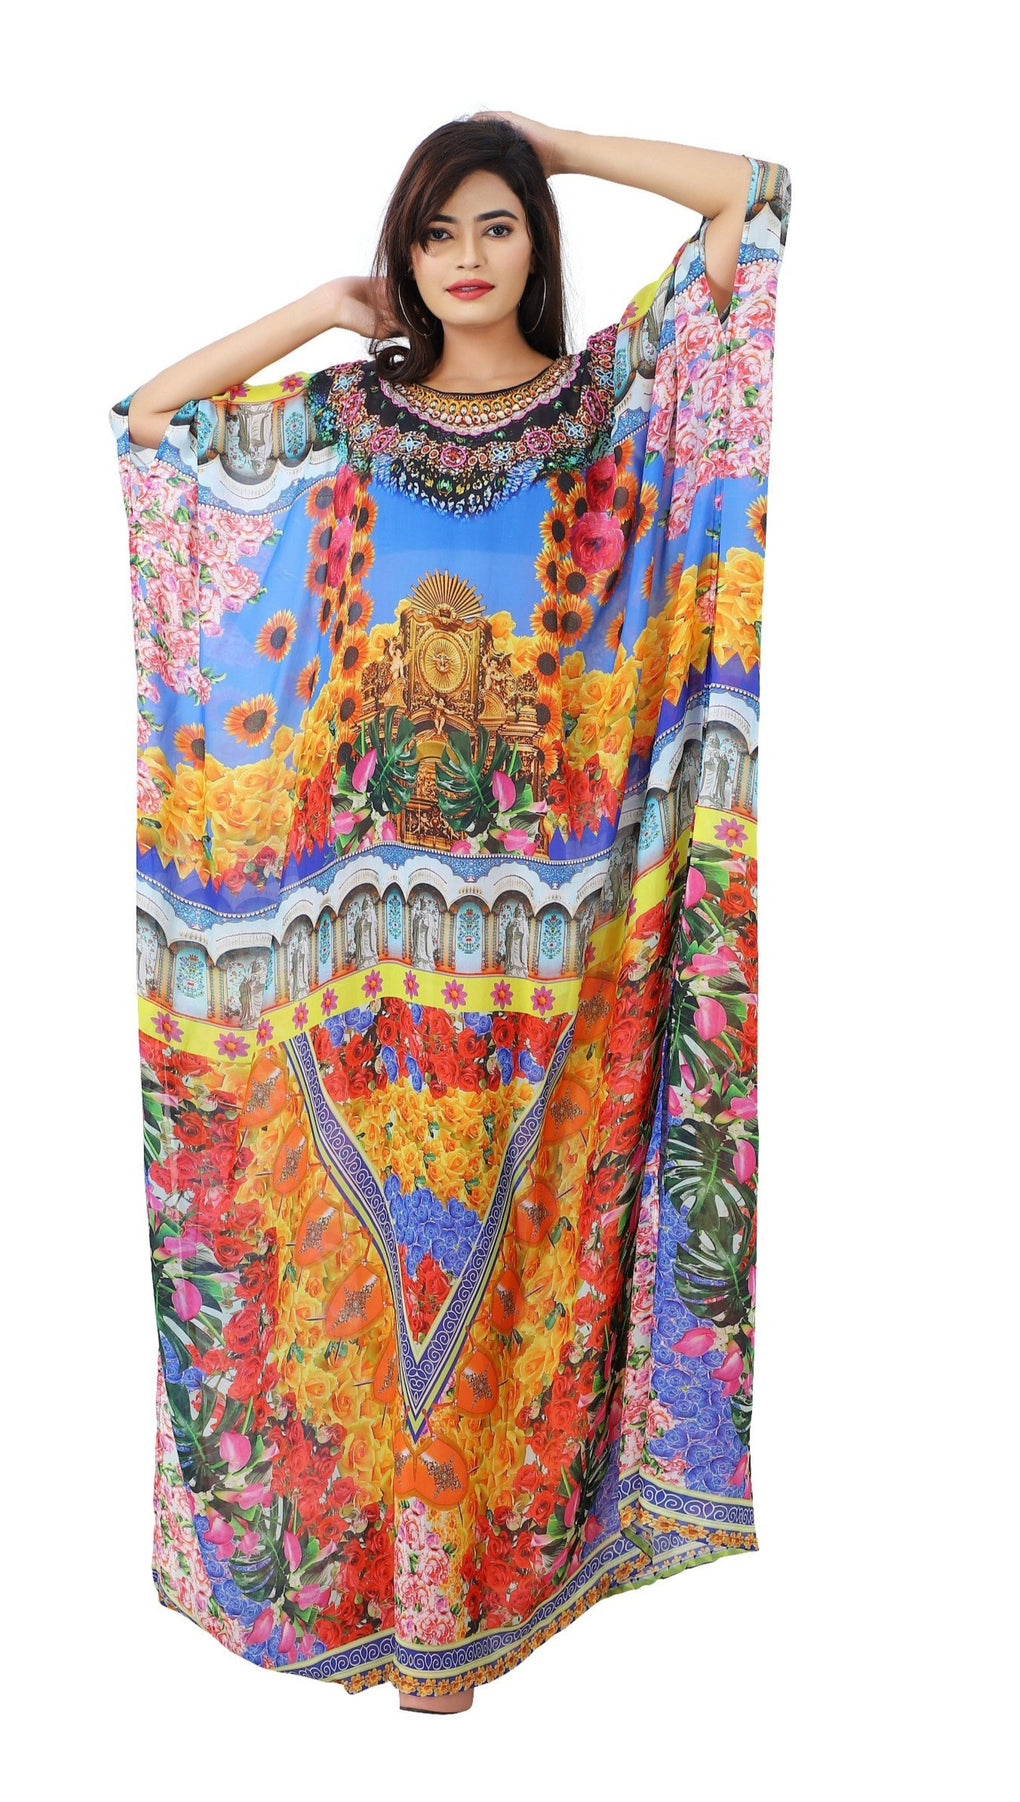 Backyard of fragrant flowers on Silk maxi long kaftan ornamented with beads